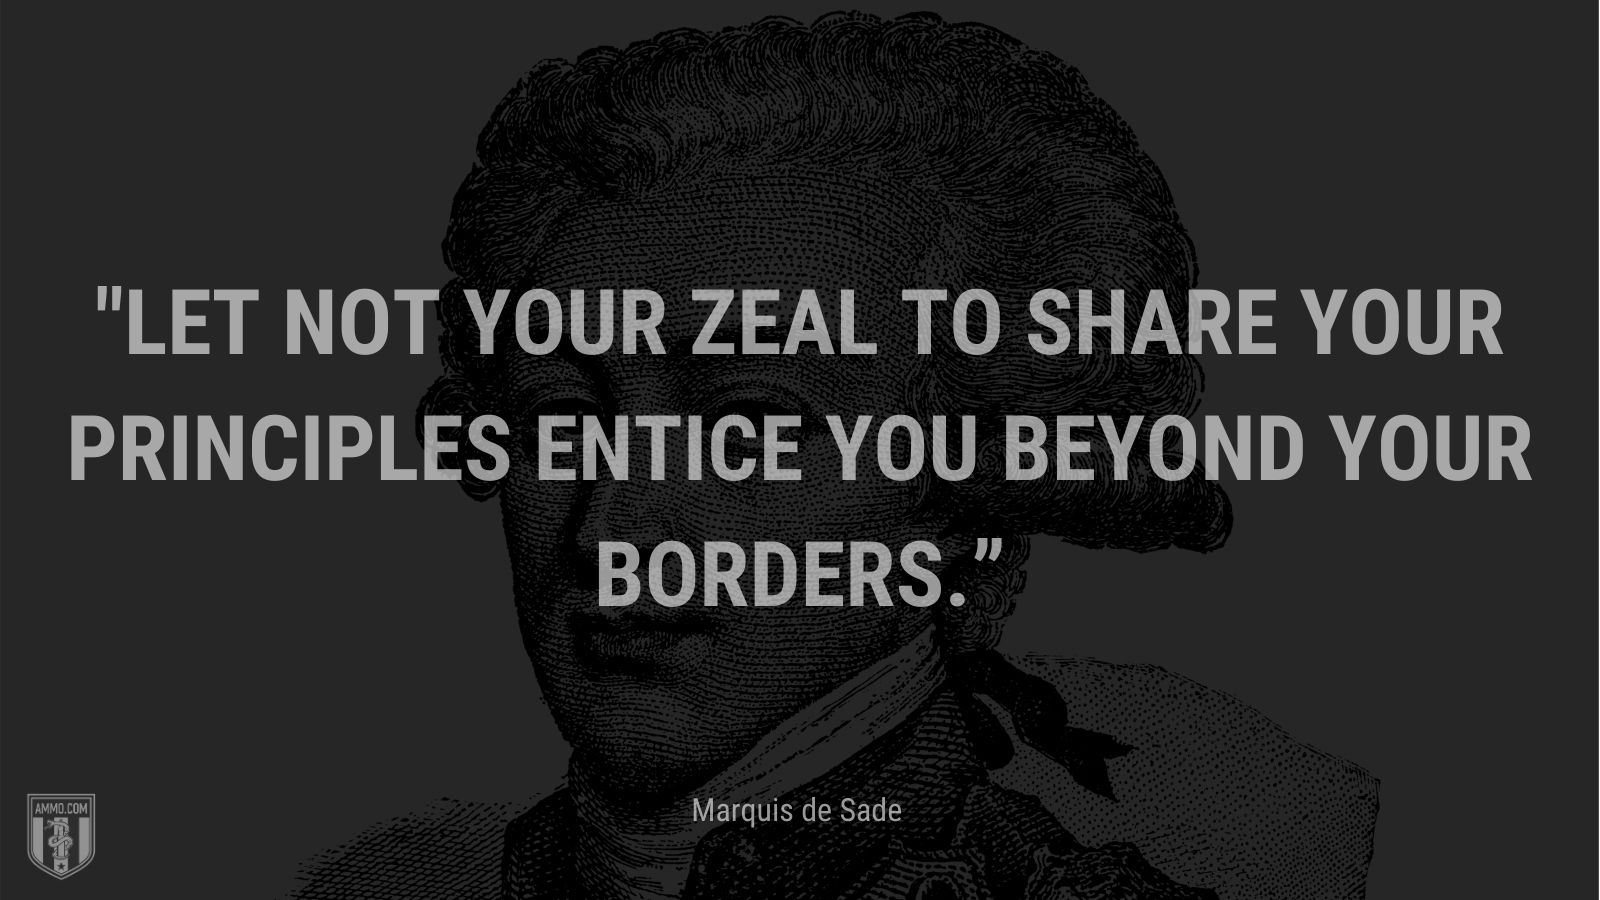 """""""Let not your zeal to share your principles entice you beyond your borders."""" - Marquis de Sade"""